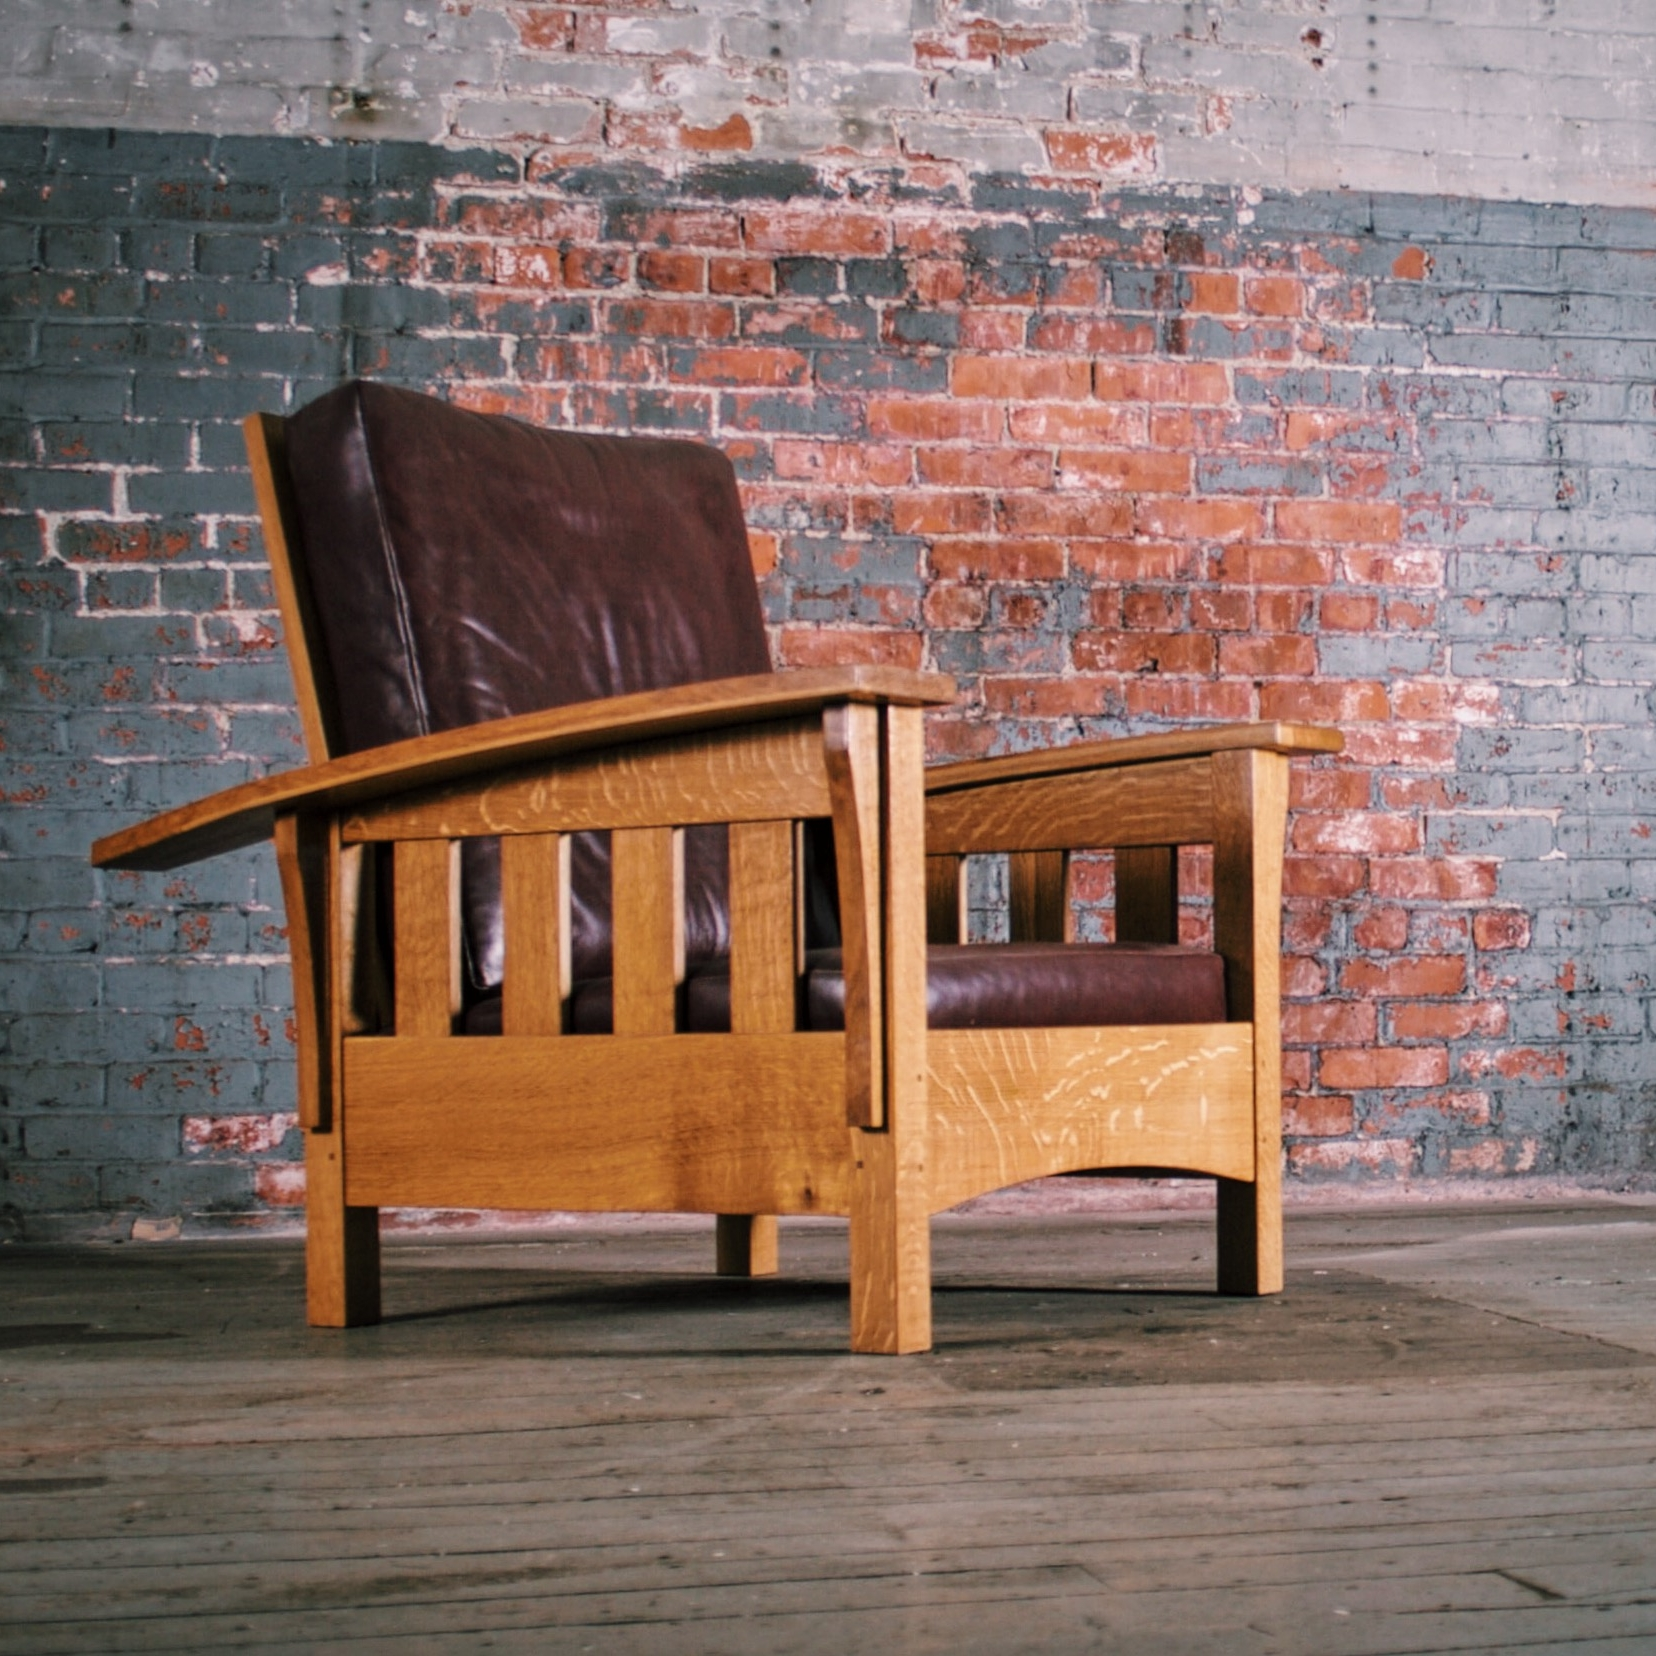 CHAIRS:   SIDE & ARM CHAIRS, BENCHES, STOOLS